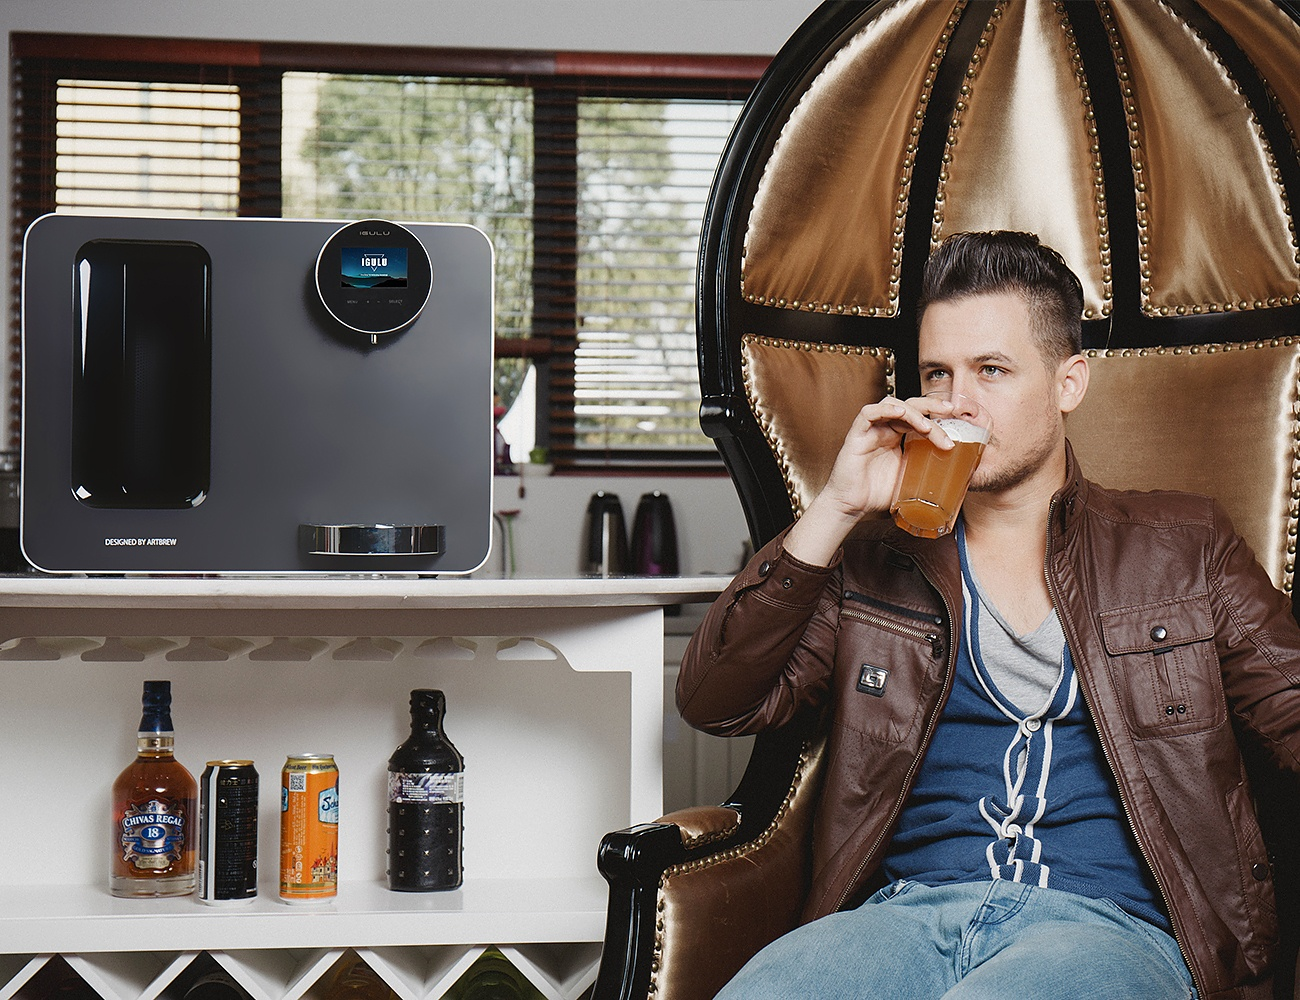 iGulu – Smart, Automated Craft Beer Home Brewery